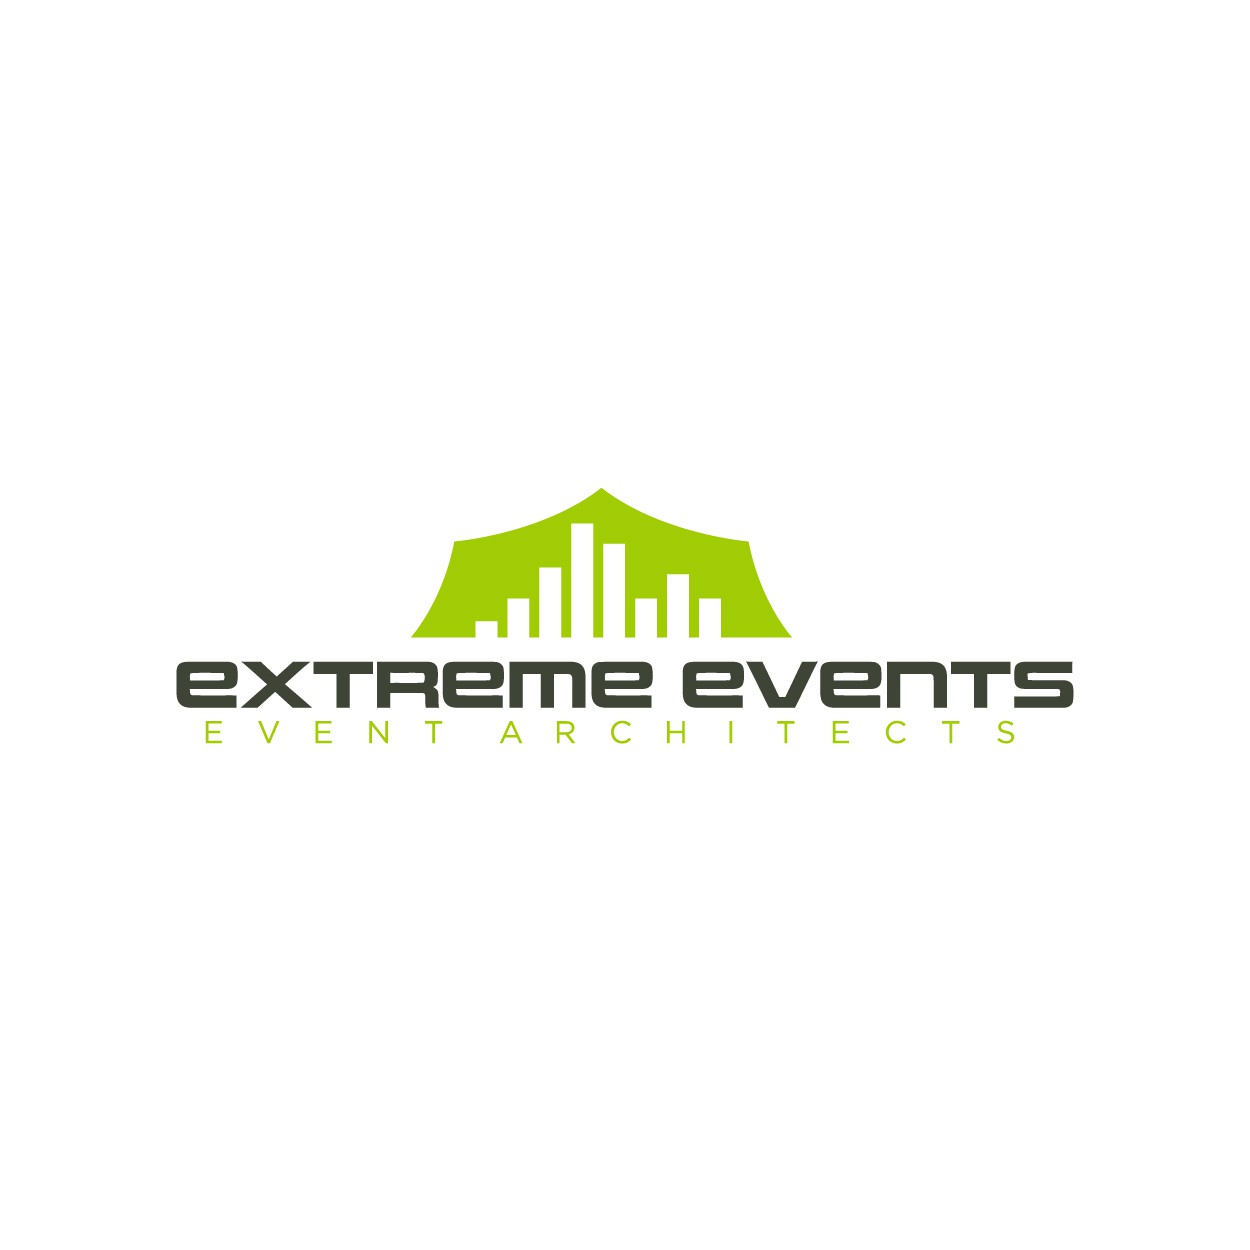 Epic logo needed for Eventing hire company